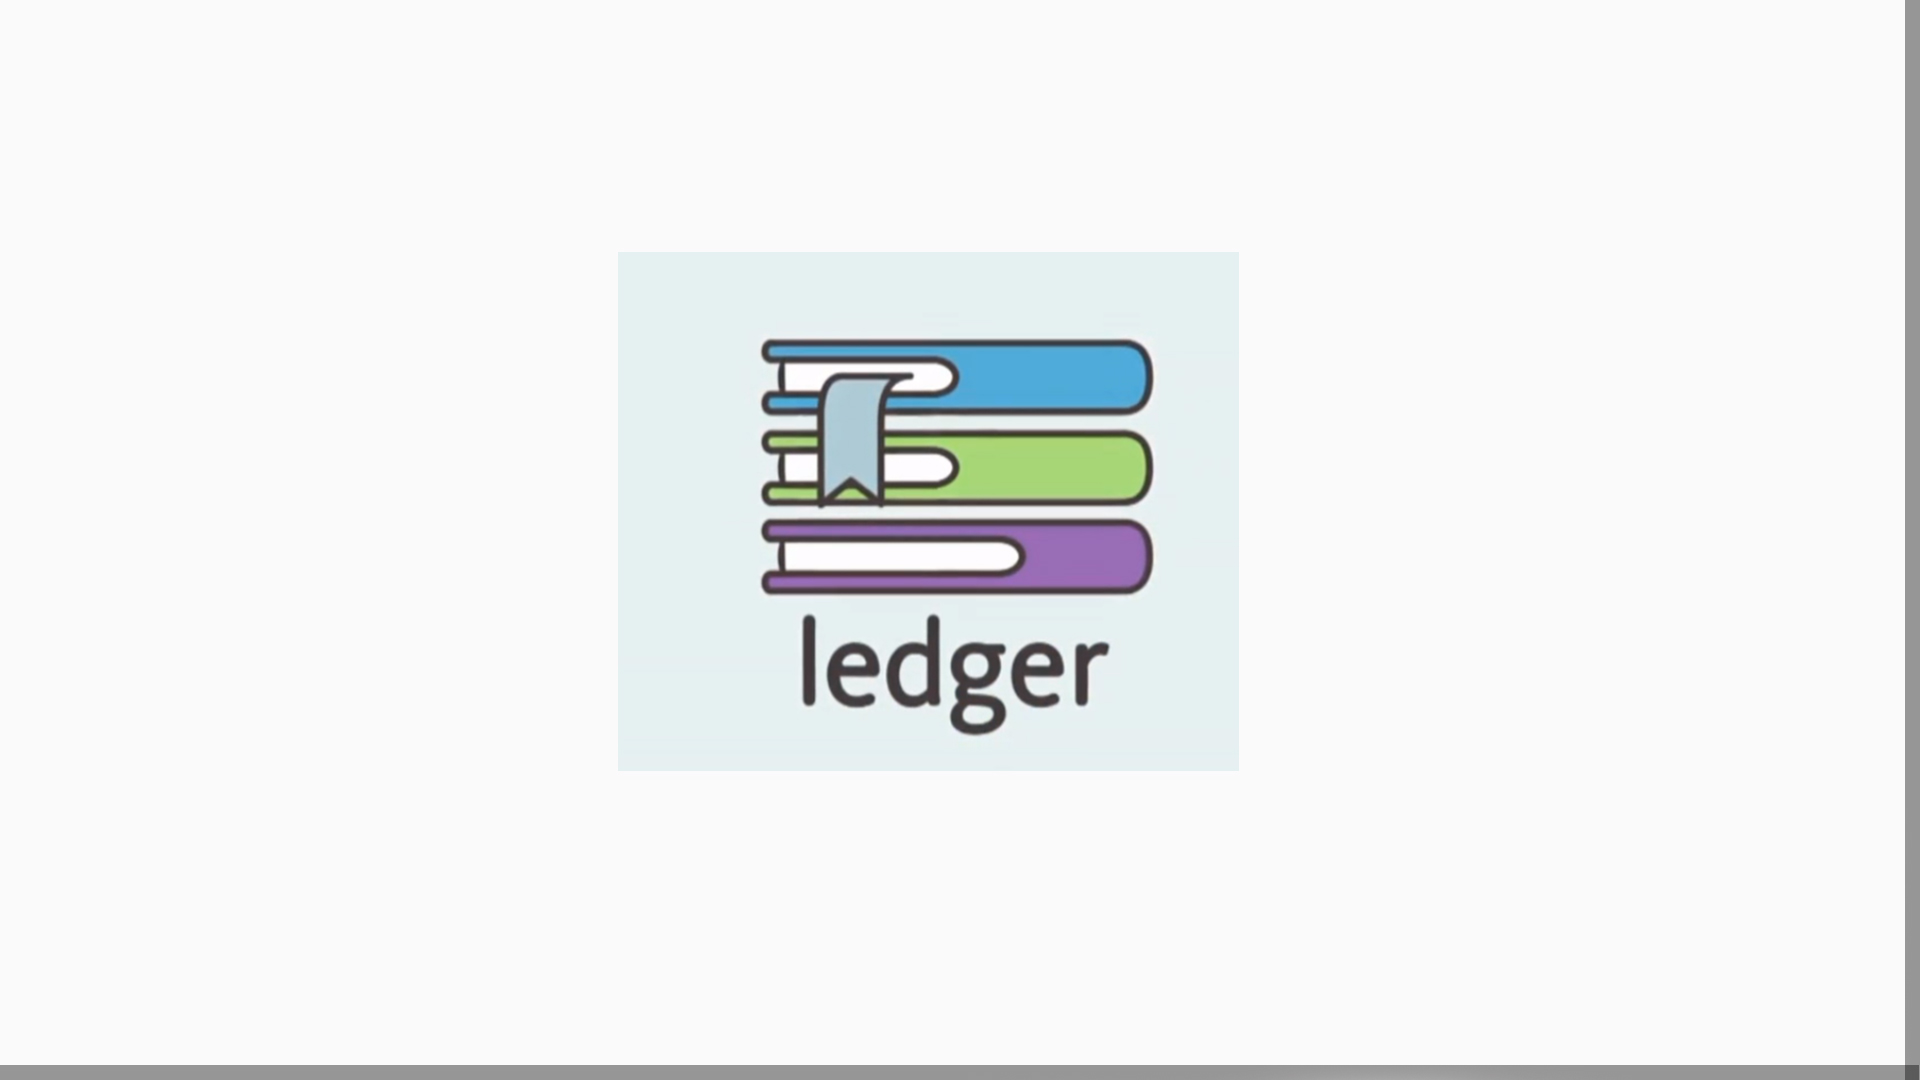 The Ledger